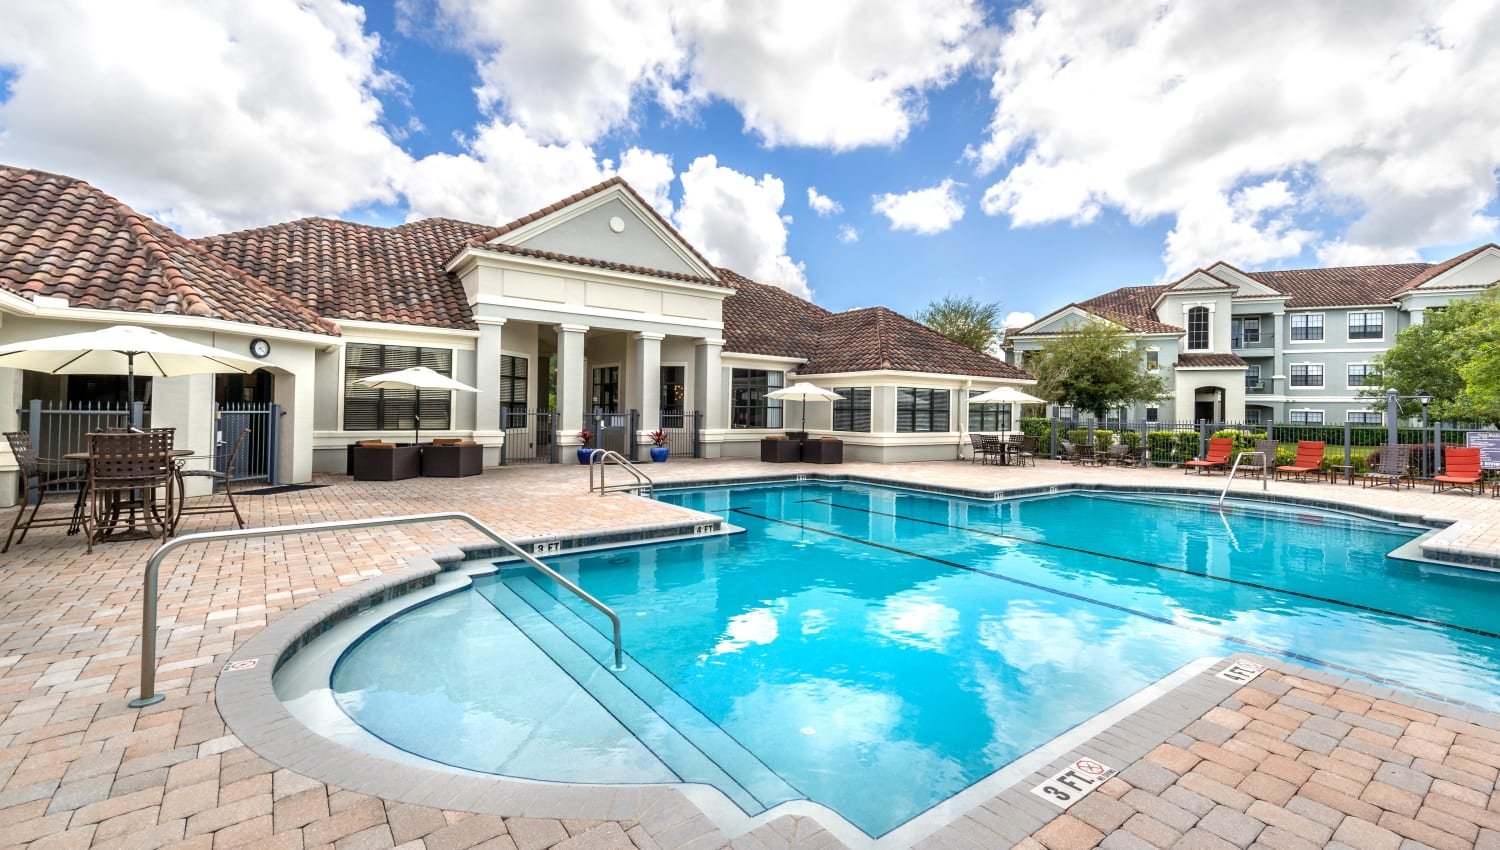 Resort-style swimming pool at Mirador & Stovall at River City in Jacksonville, Florida